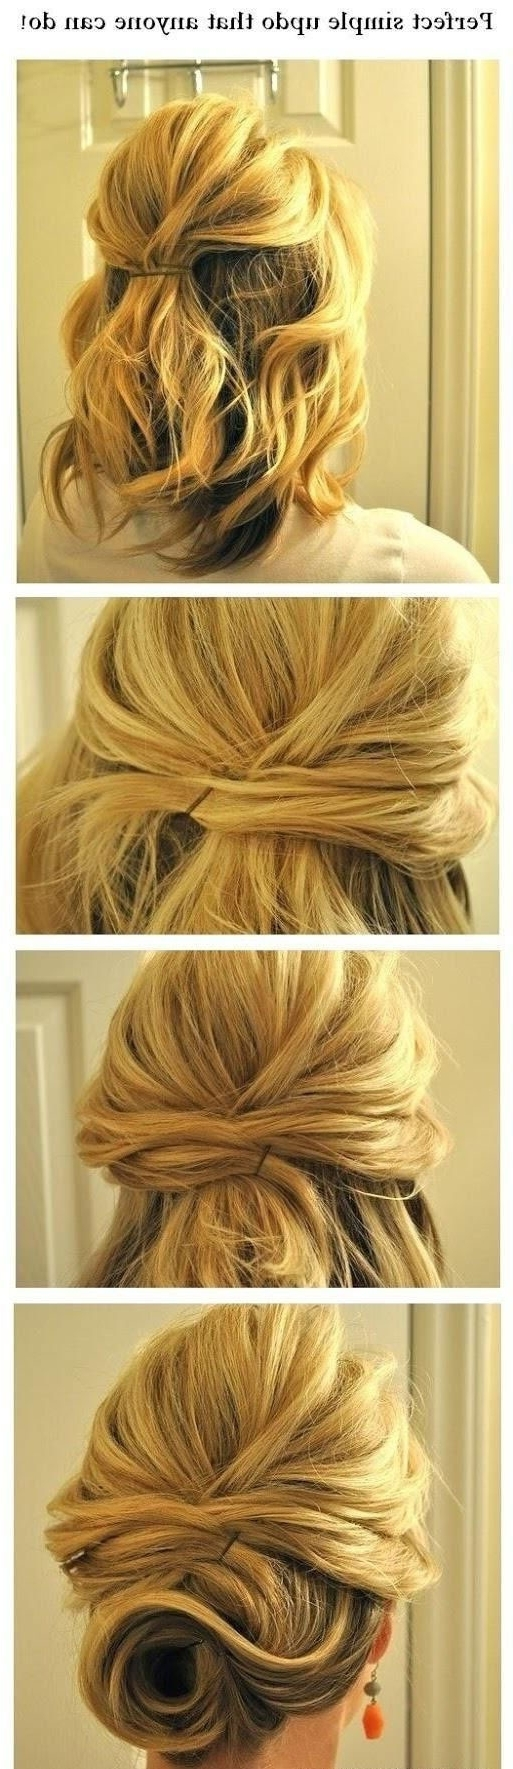 15 Cute And Easy Hairstyle Tutorials For Medium Length Hair – Gurl In 2017 Diy Wedding Hairstyles For Medium Length Hair (View 1 of 15)